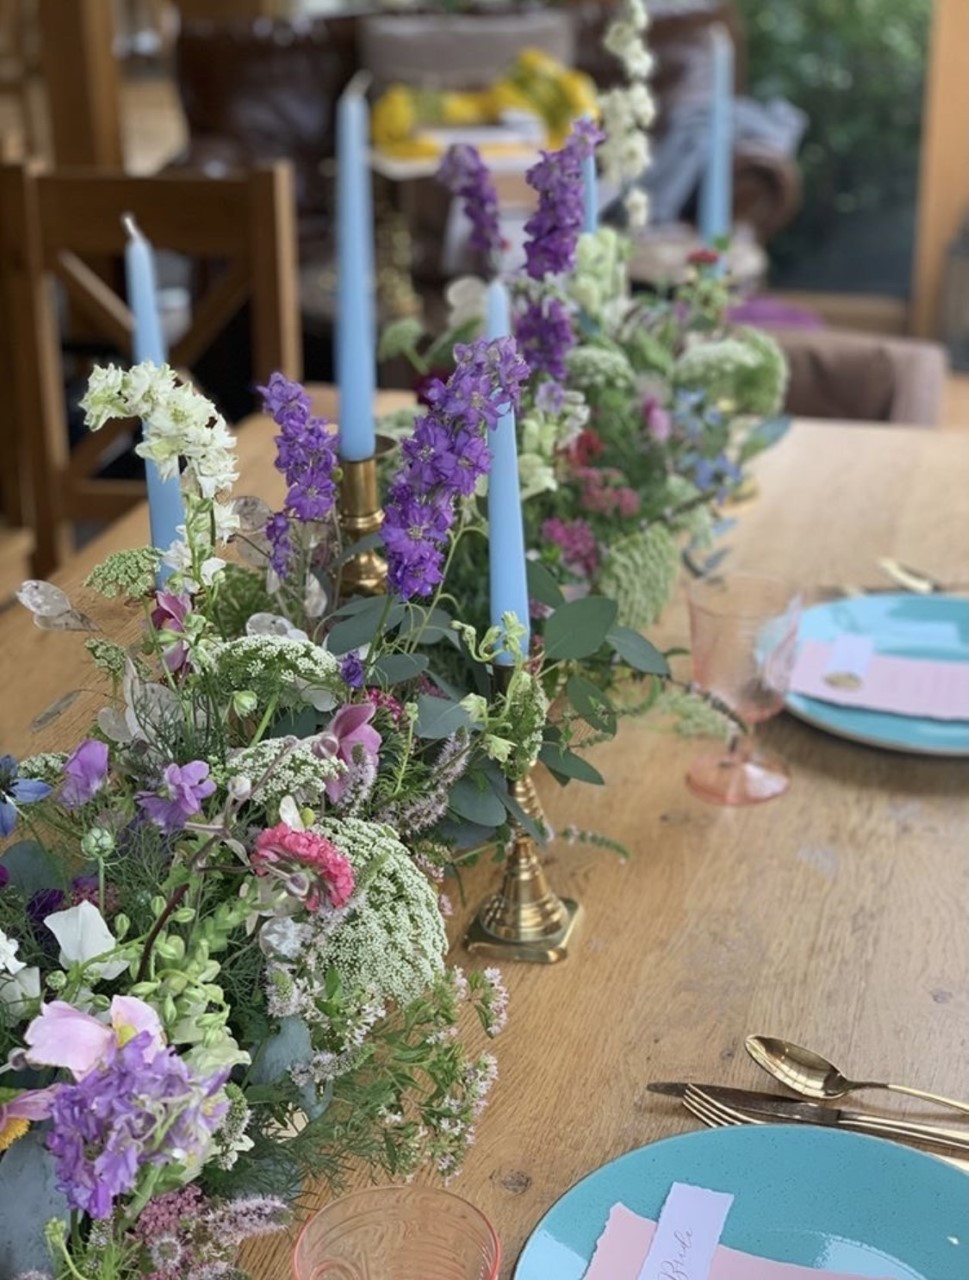 Floral meadow table runner incorporating purple and blue flowers sits on a table with blue candles in antique brass holders and blue tableware with gold cutlery. Set up ready for a wedding breakfast. Wedding flowers by Emma Jane Floral Design.